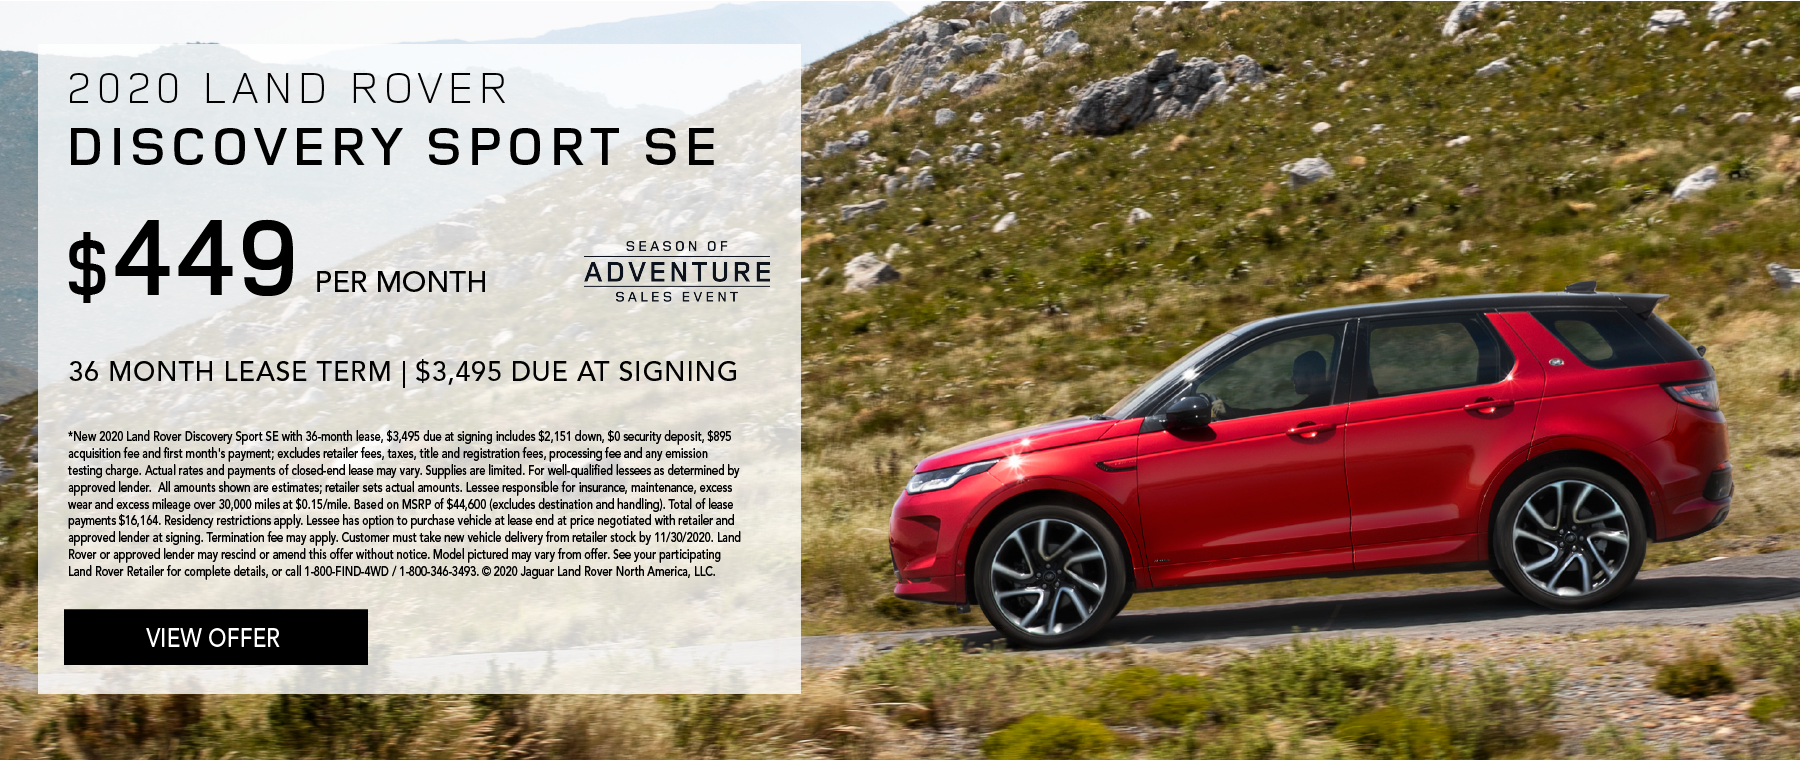 2020 LAND ROVER DISCOVERY SPORT SE. $449 PER MONTH. 36 MONTH LEASE TERM. $3,495 CASH DUE AT SIGNING. $0 SECURITY DEPOSIT. 10,000 MILES PER YEAR. EXCLUDES RETAILER FEES, TAXES, TITLE AND REGISTRATION FEES, PROCESSING FEE AND ANY EMISSION TESTING CHARGE. ENDS 11/30/2020.